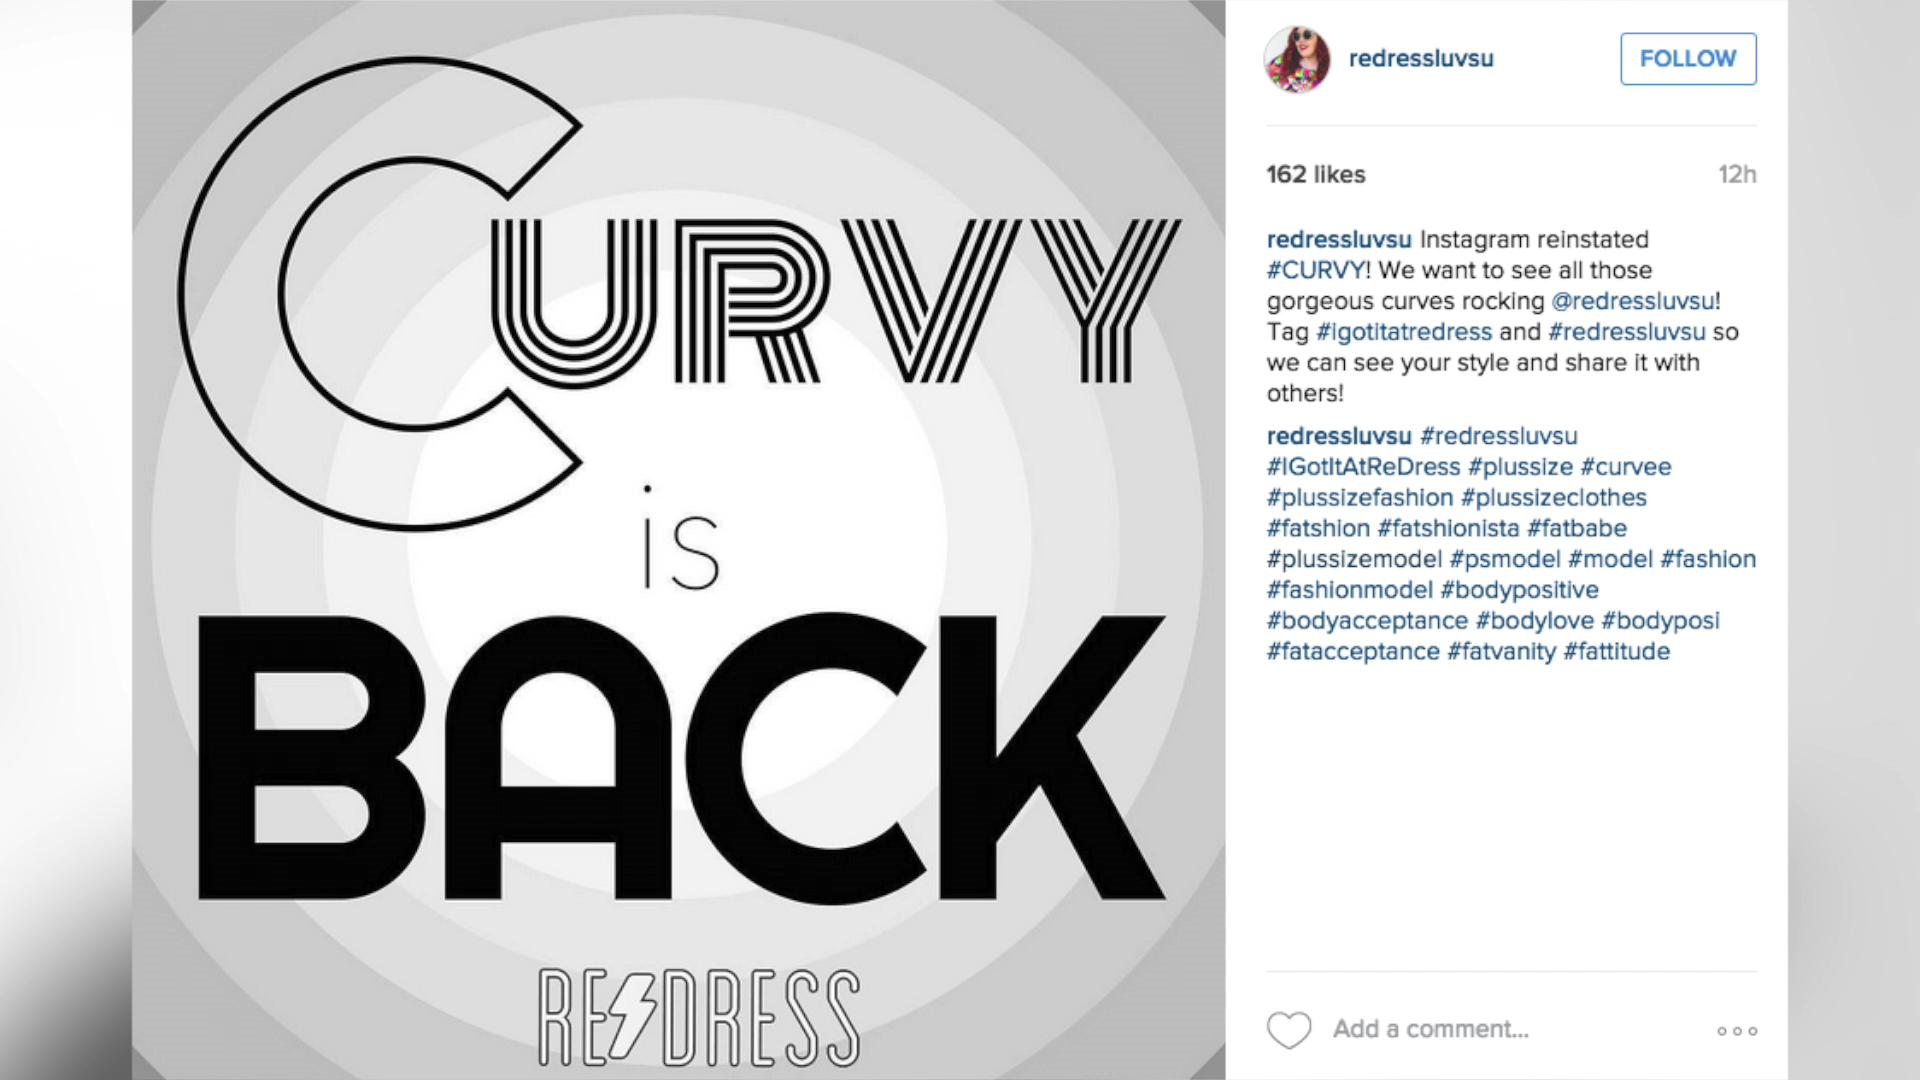 Instagram lifts #curvy ban